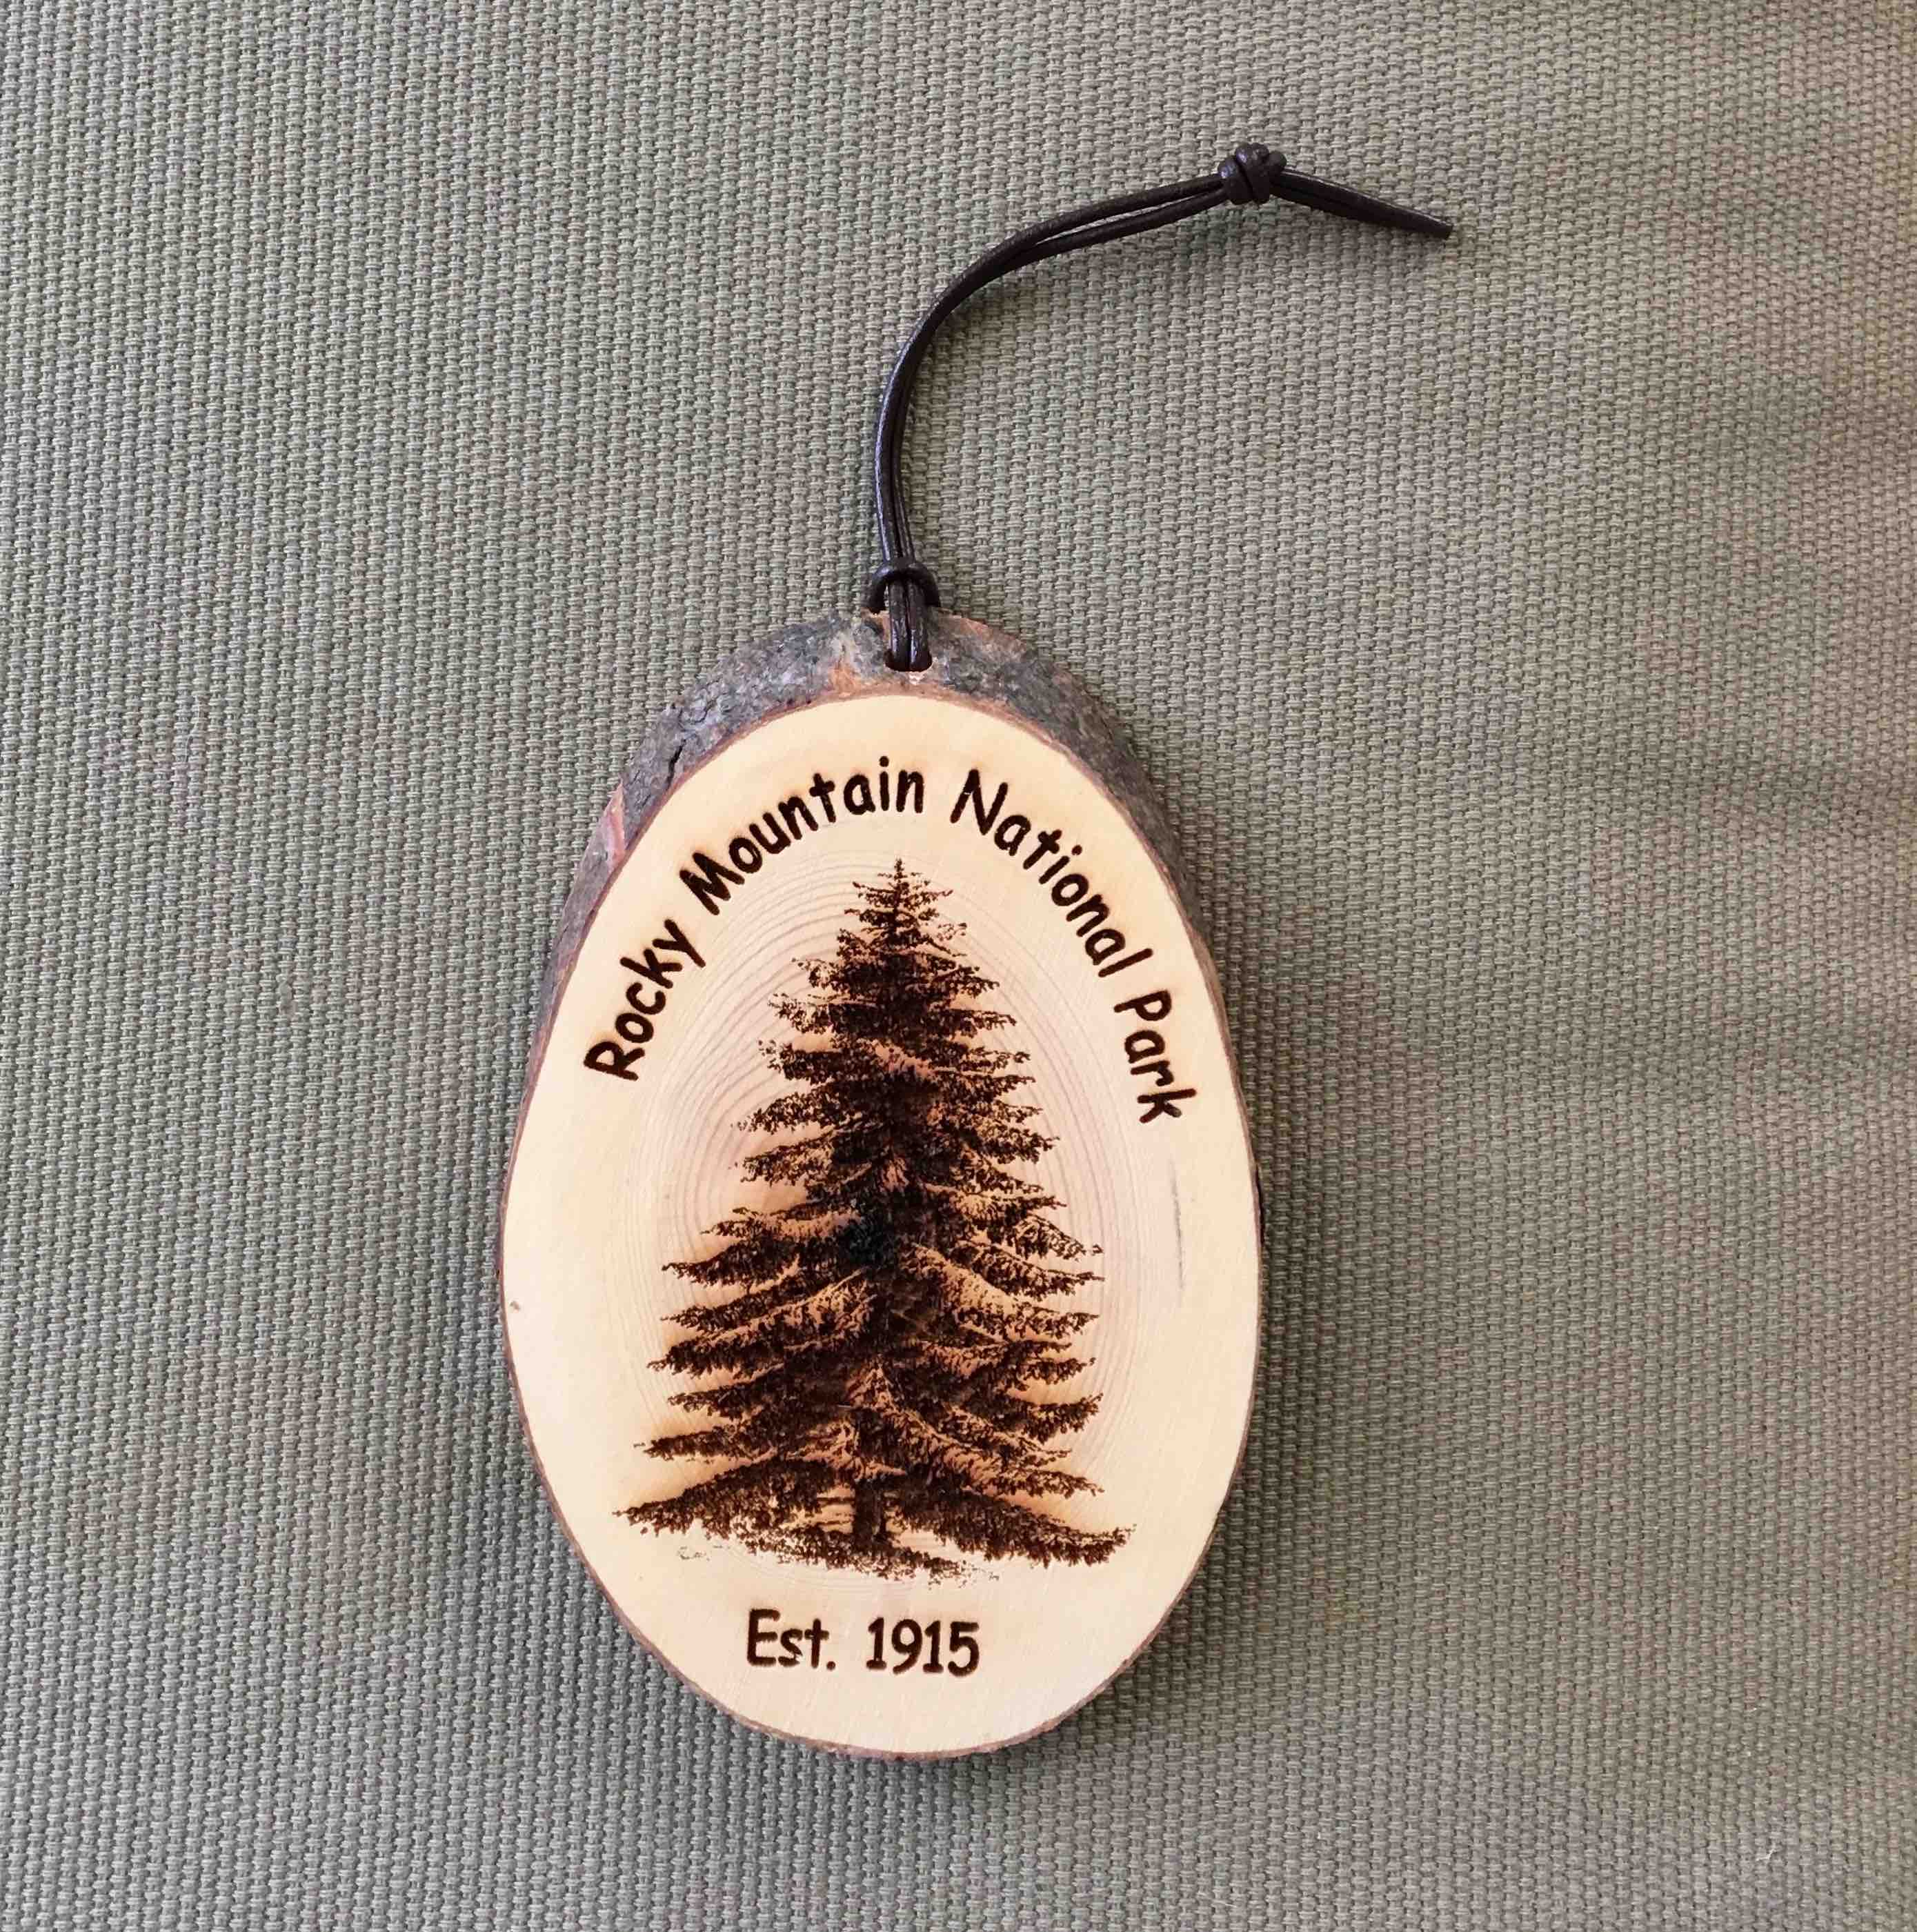 RMNP - Christmas Tree Bark Ornament